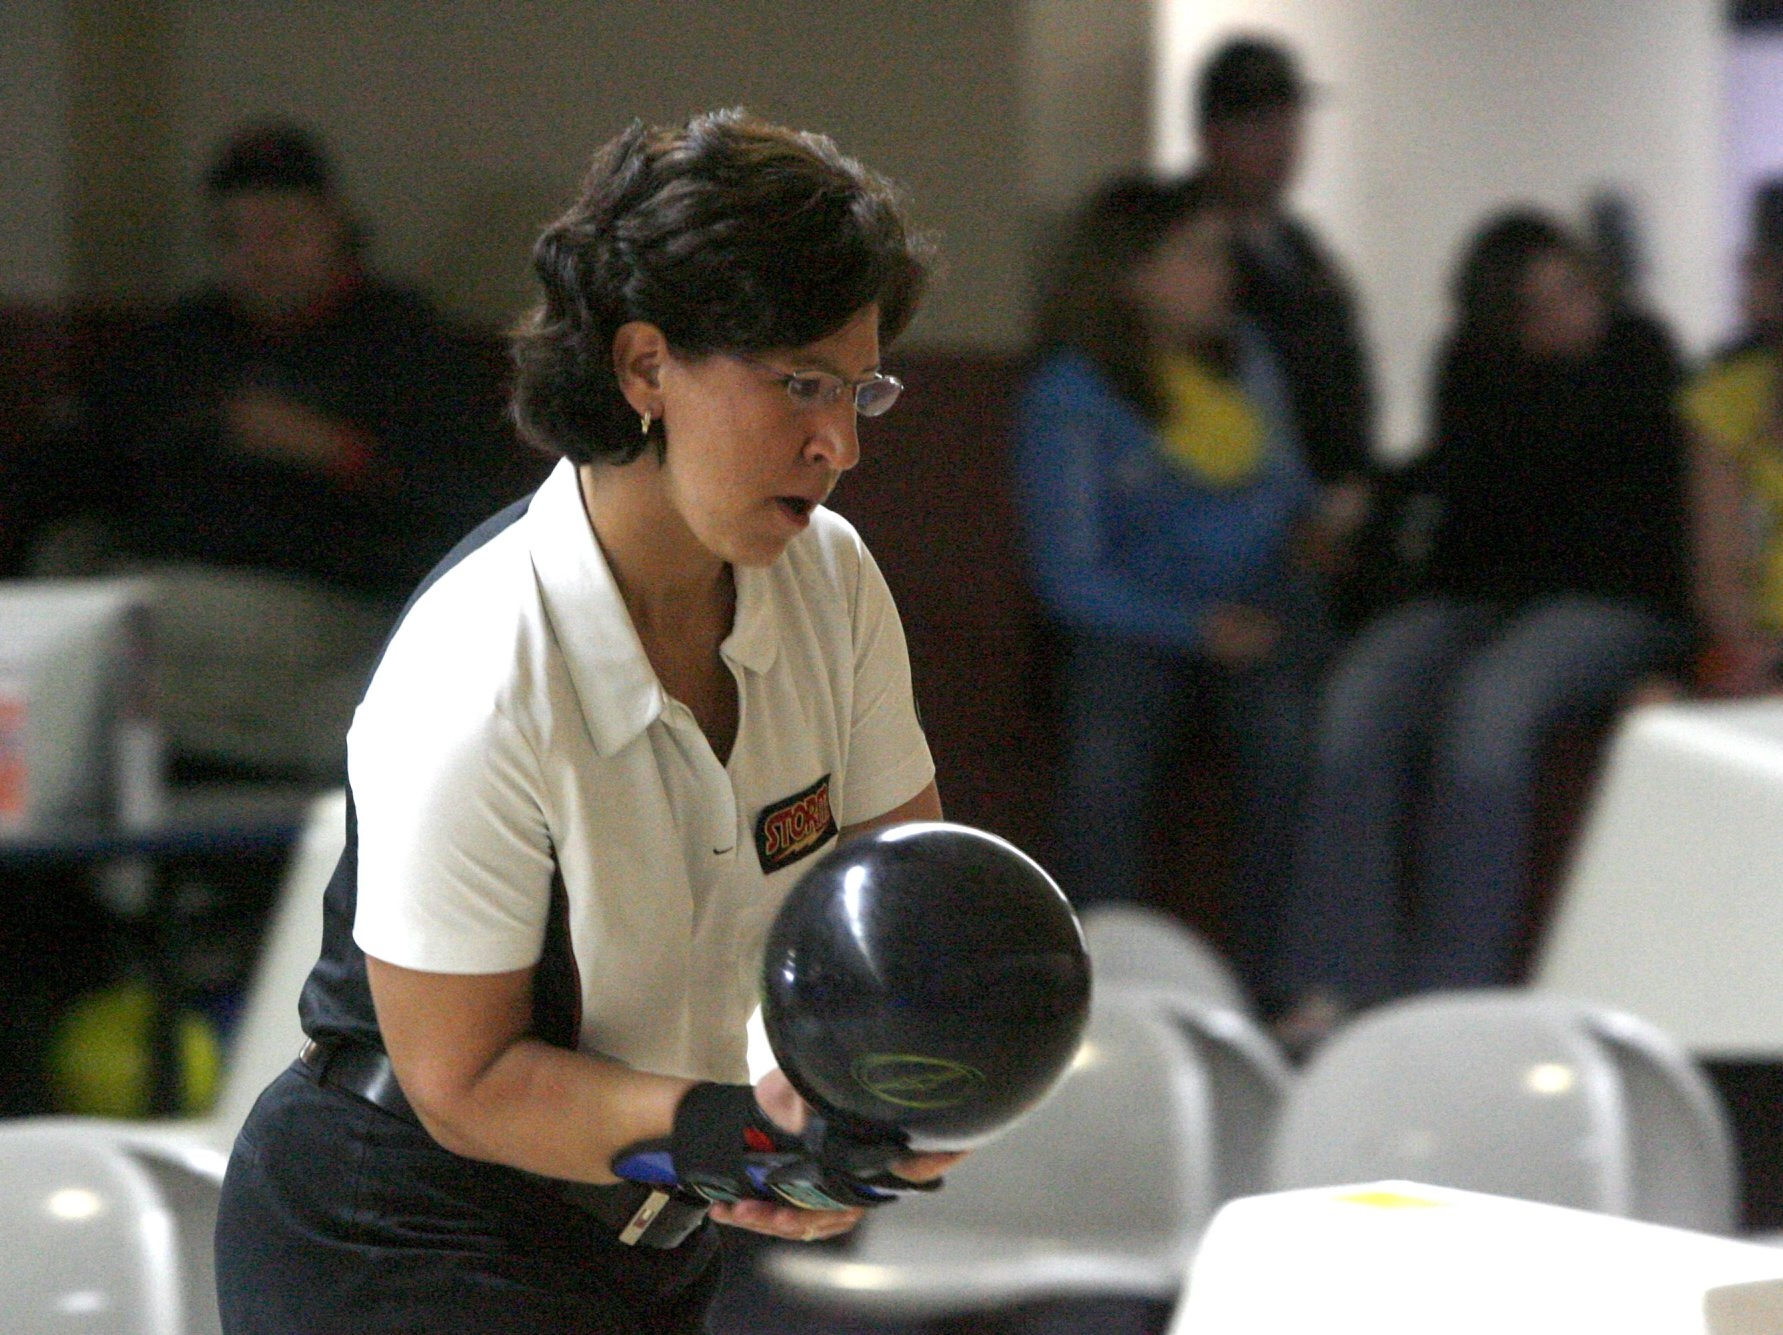 Liz Johnson has been bowling for almost all of her life. She had a 200 average at age 13.